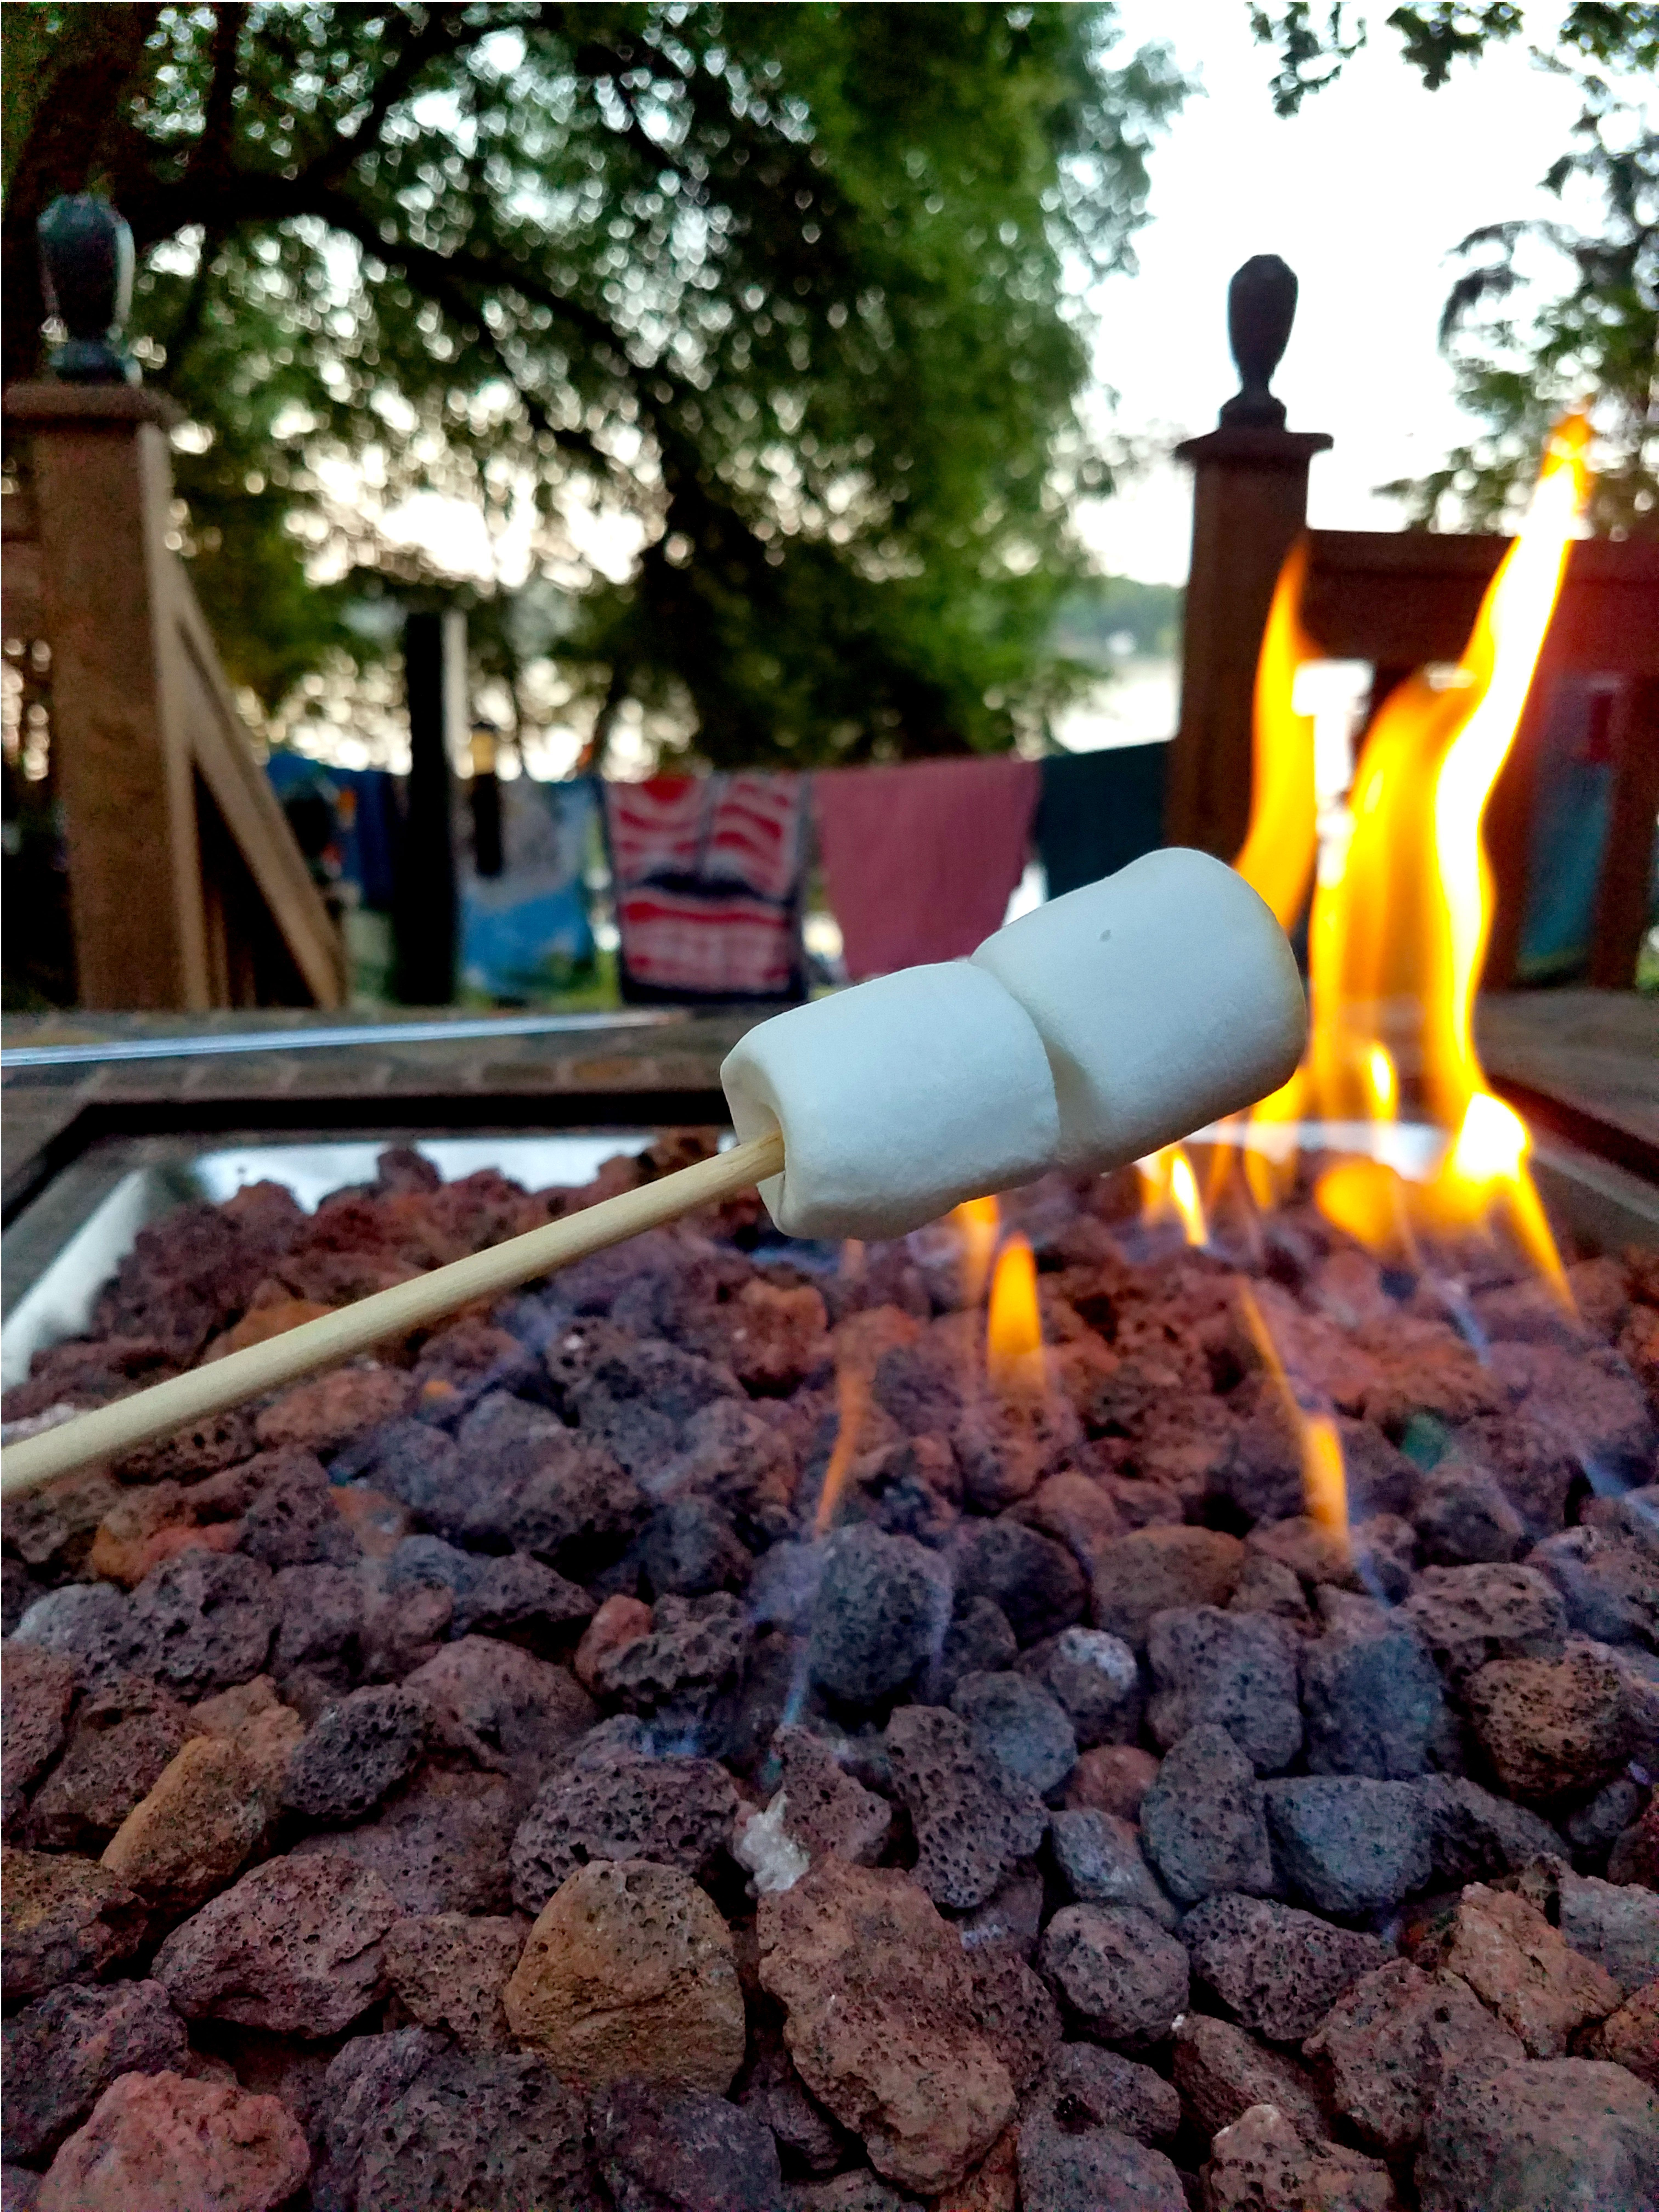 Bamboo Marshmallow Sticks #marshmallowsticks Summer Vibes on our Mind! Get this bamboo marshmallow sticks and start roasting some marshmallow today!! #marshmallowsticks Bamboo Marshmallow Sticks #marshmallowsticks Summer Vibes on our Mind! Get this bamboo marshmallow sticks and start roasting some marshmallow today!! #marshmallowsticks Bamboo Marshmallow Sticks #marshmallowsticks Summer Vibes on our Mind! Get this bamboo marshmallow sticks and start roasting some marshmallow today!! #marshmallow #marshmallowsticks